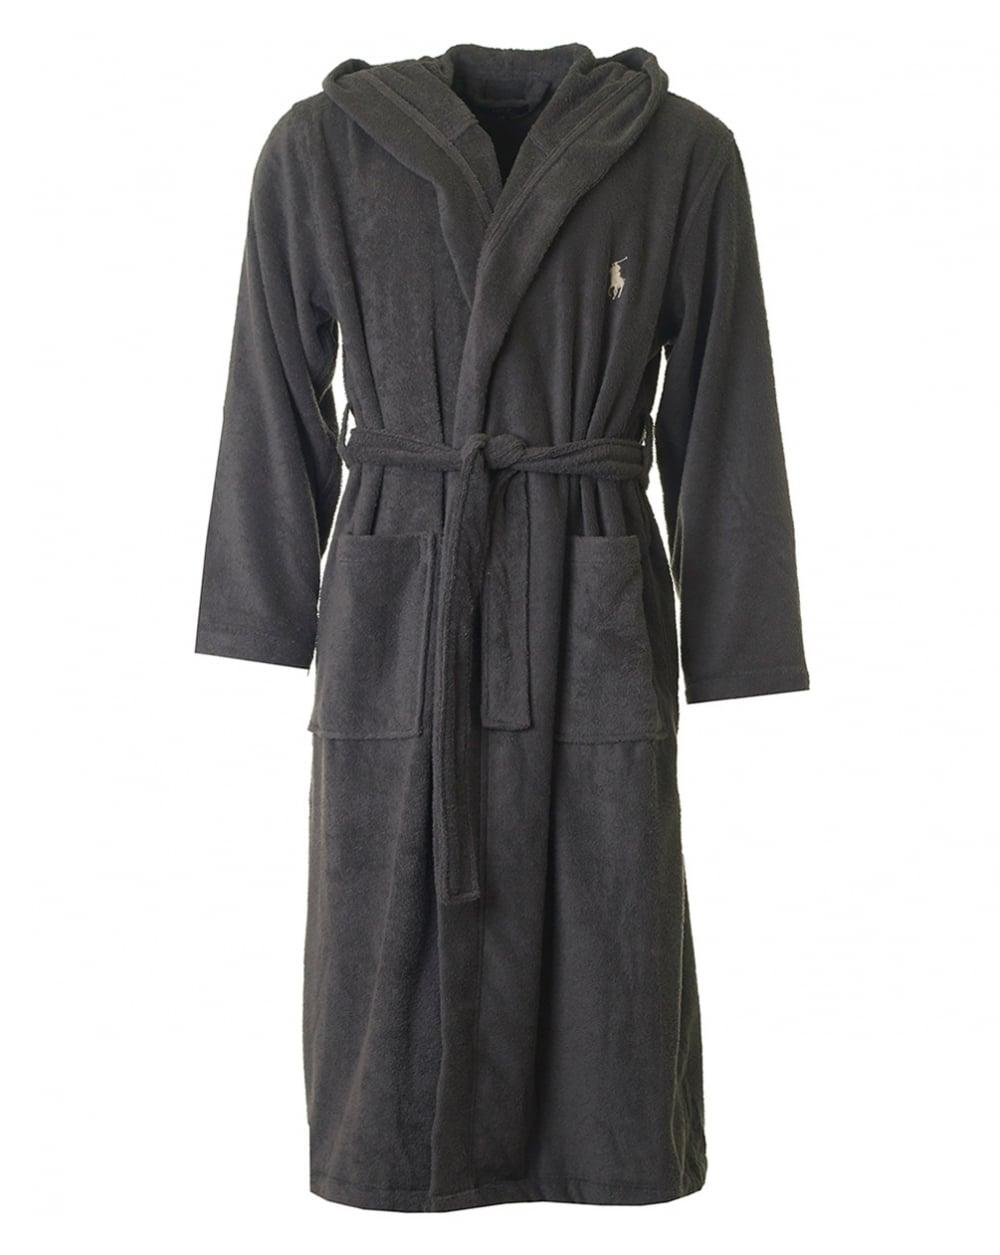 polo ralph lauren hooded dressing robe in gray lyst. Black Bedroom Furniture Sets. Home Design Ideas